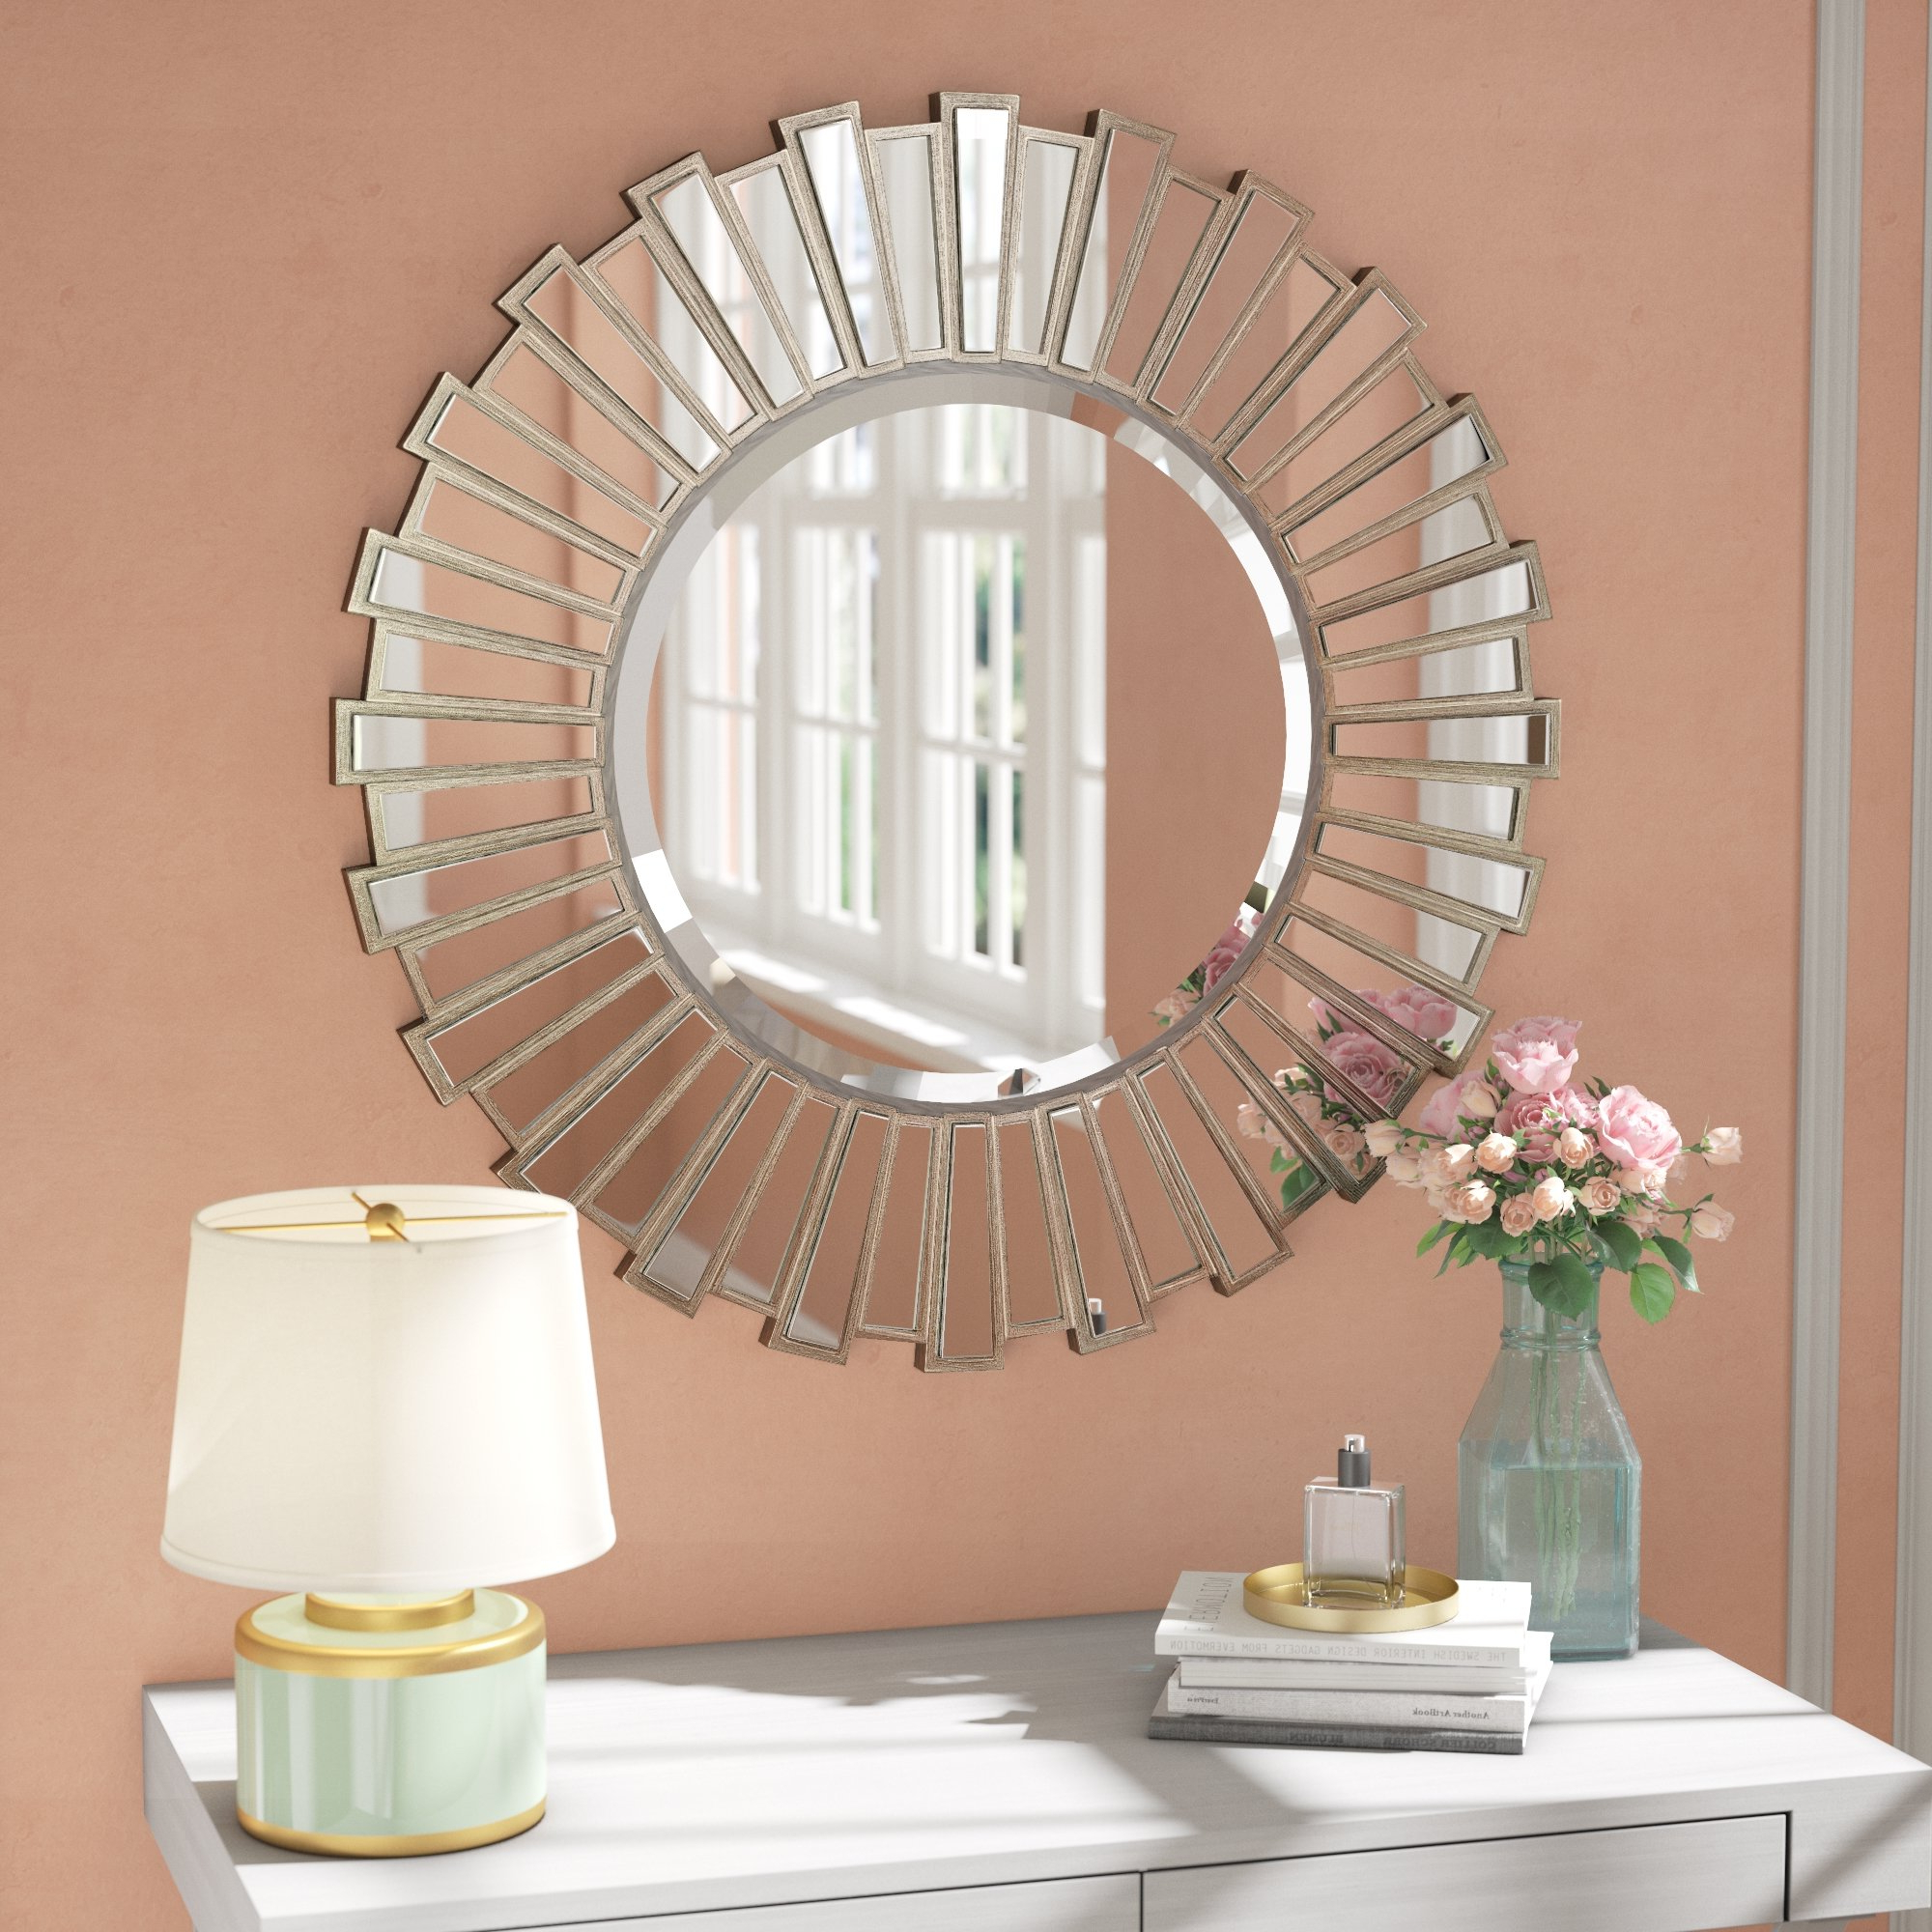 Most Recent Bertrand Sunburst Resin Accent Wall Mirror For Accent Wall Mirrors (View 19 of 20)